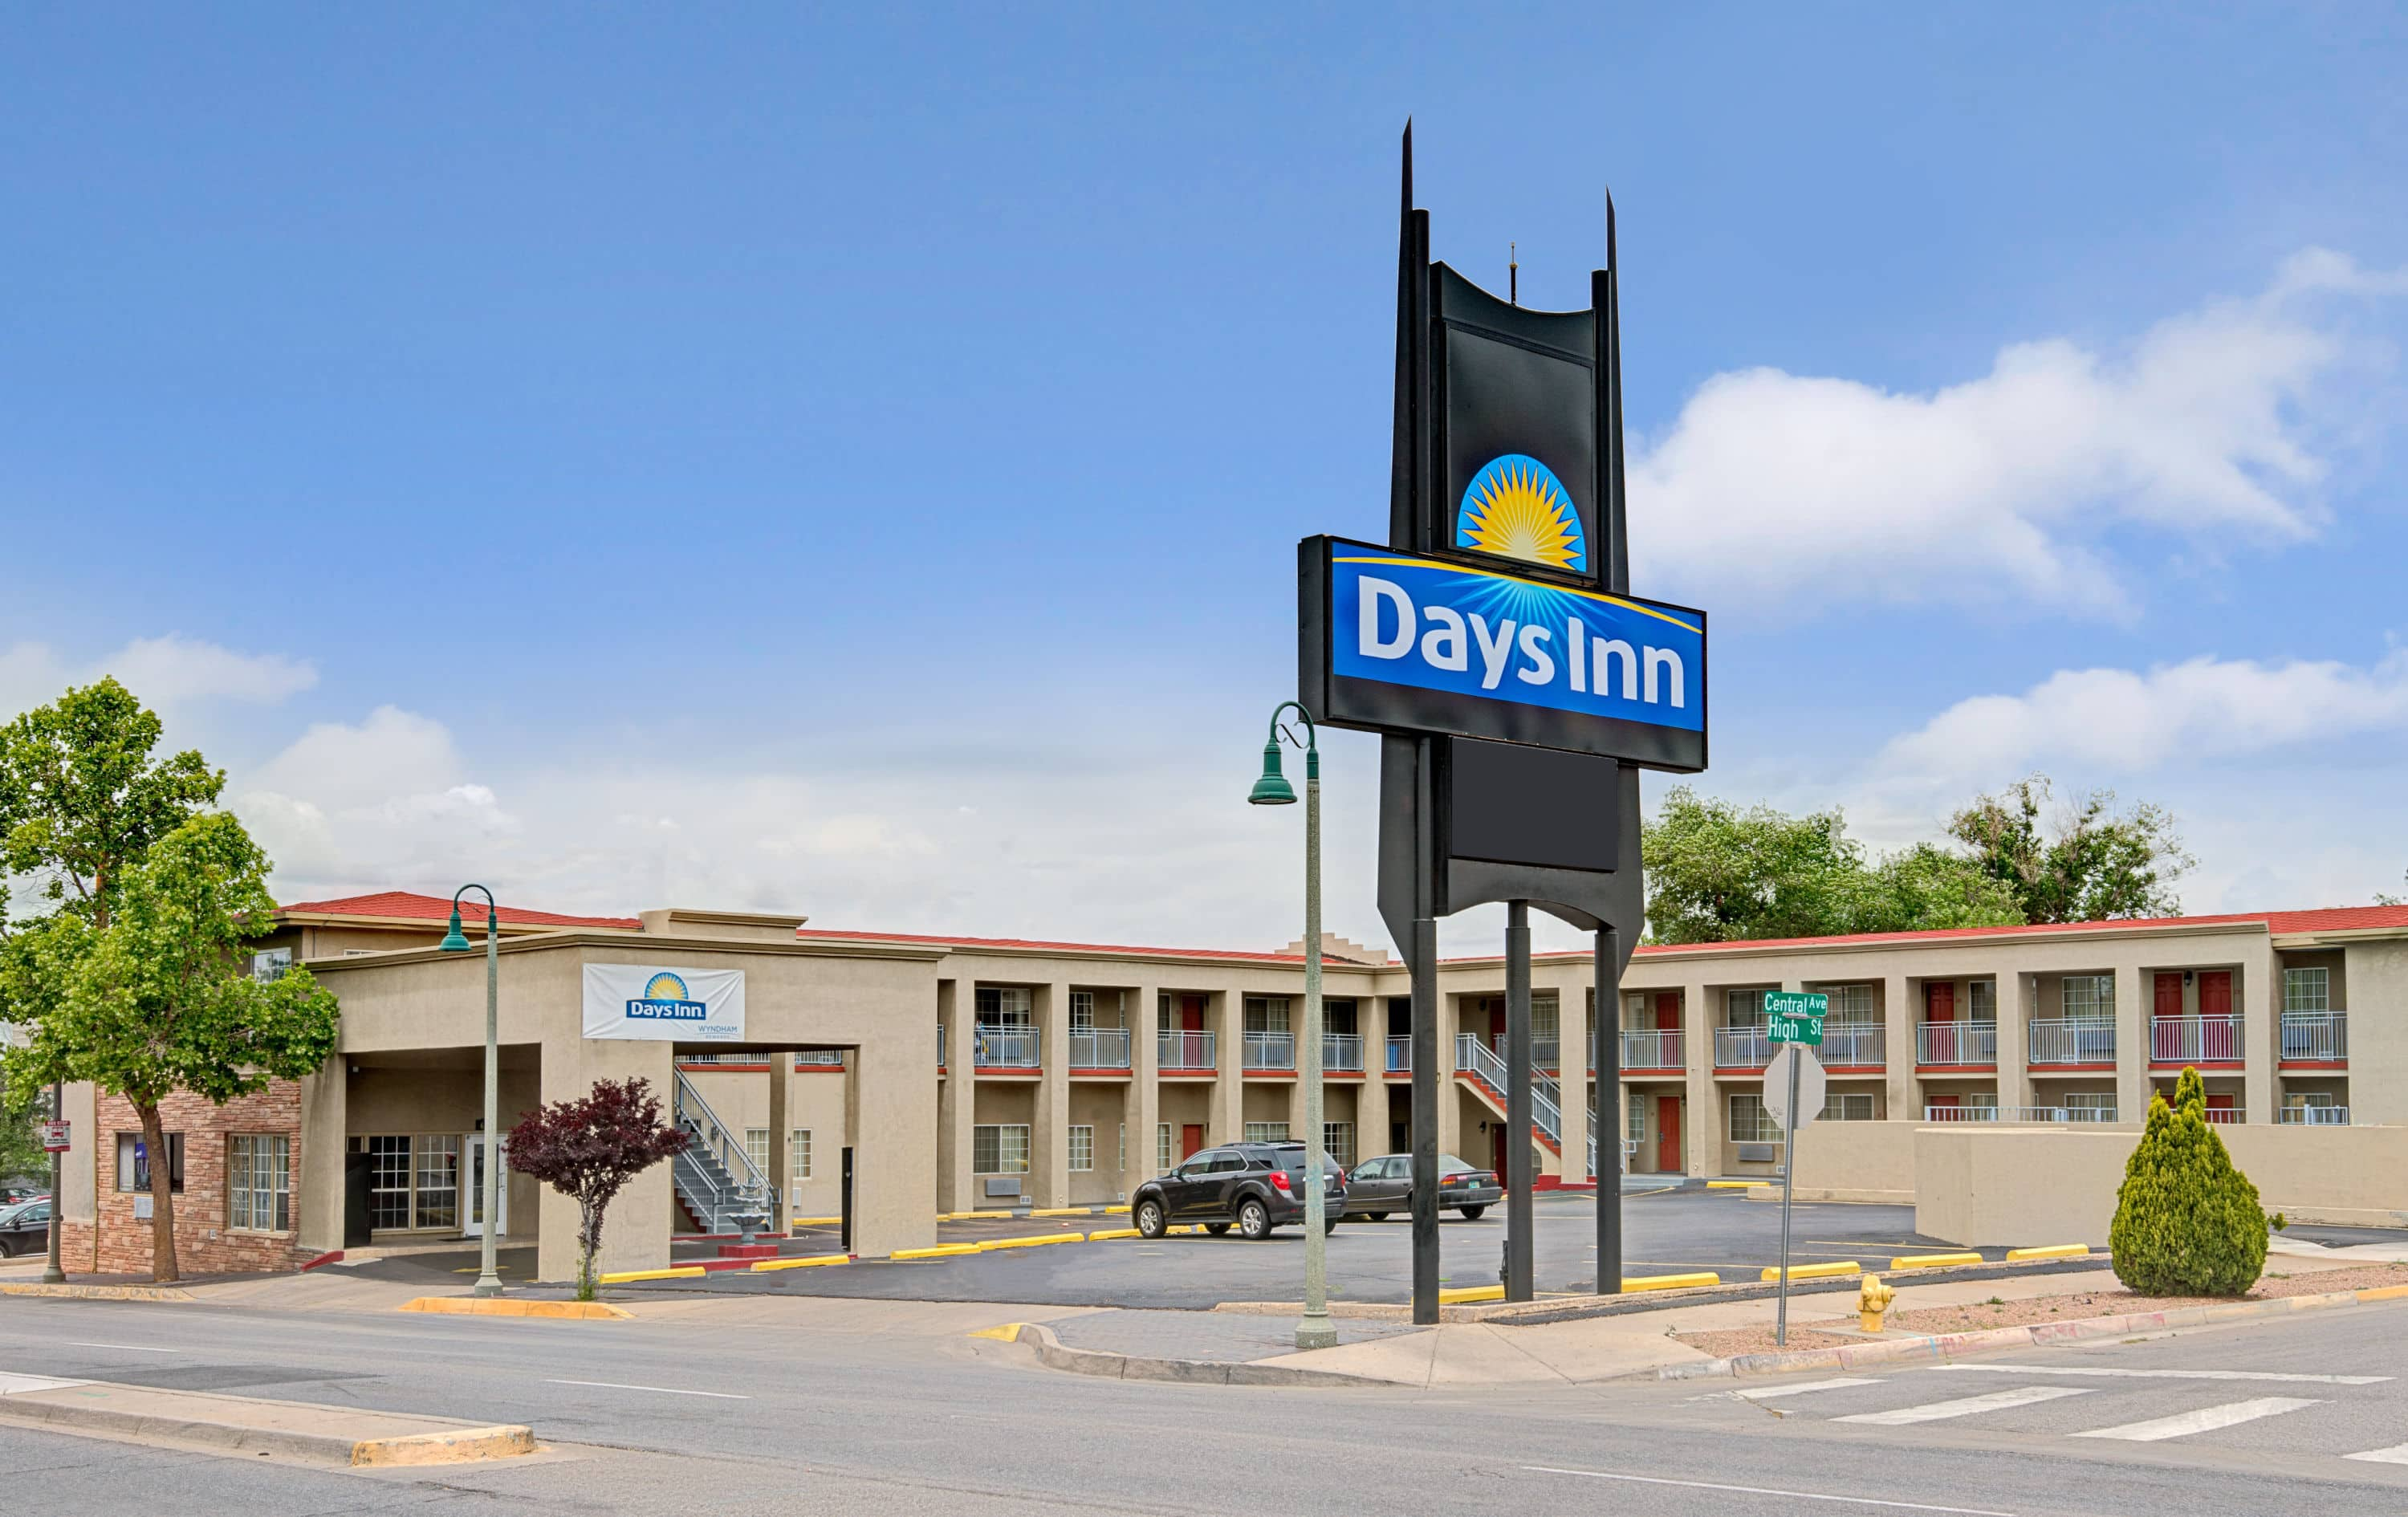 Days Inn by Wyndham Albuquerque Downtown | Albuquerque, NM ... Map Of Hotels In Albuquerque on map of playa del carmen all inclusive resorts, map of london hotels, map of hotels phoenix, map of nursing homes in albuquerque, map of hotels st pete beach, map of hotels near grand canyon, map of jackson hole hotels, map of hard rock hotel vegas, map of french quarter hotels new orleans, map of kissimmee hotels, weather in albuquerque, map of ocean city hotels, map of bike paths in albuquerque, map of downtown denver hotels, map of hotels california, map of zip codes in albuquerque, map of casinos in albuquerque, map of hotels asheville nc, map of hotels chicago, map of louisville hotels,